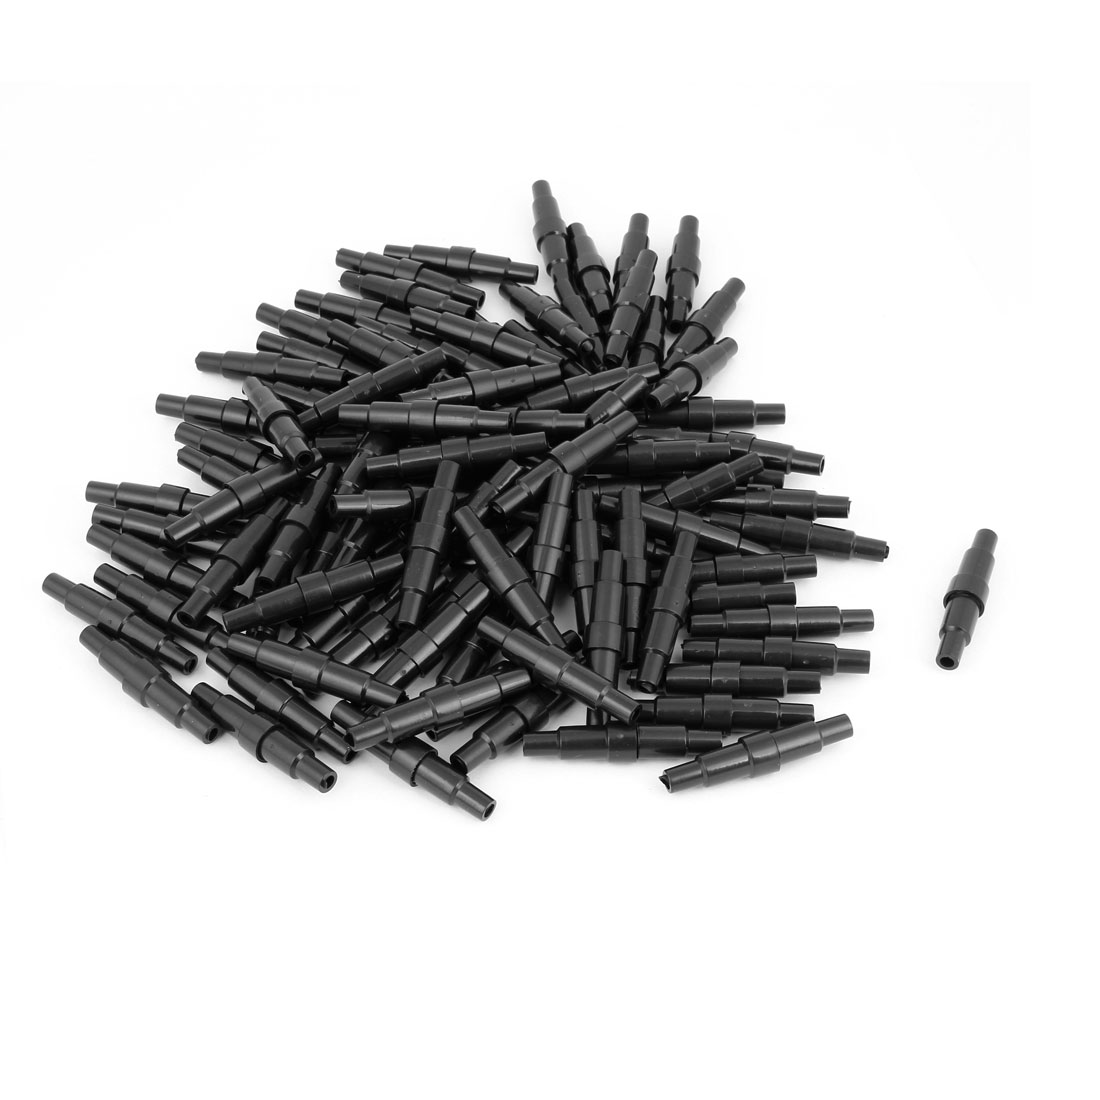 100 Pcs Black Plastic Screw Type Cap 20mm x 5mm Fuse Tube Holder